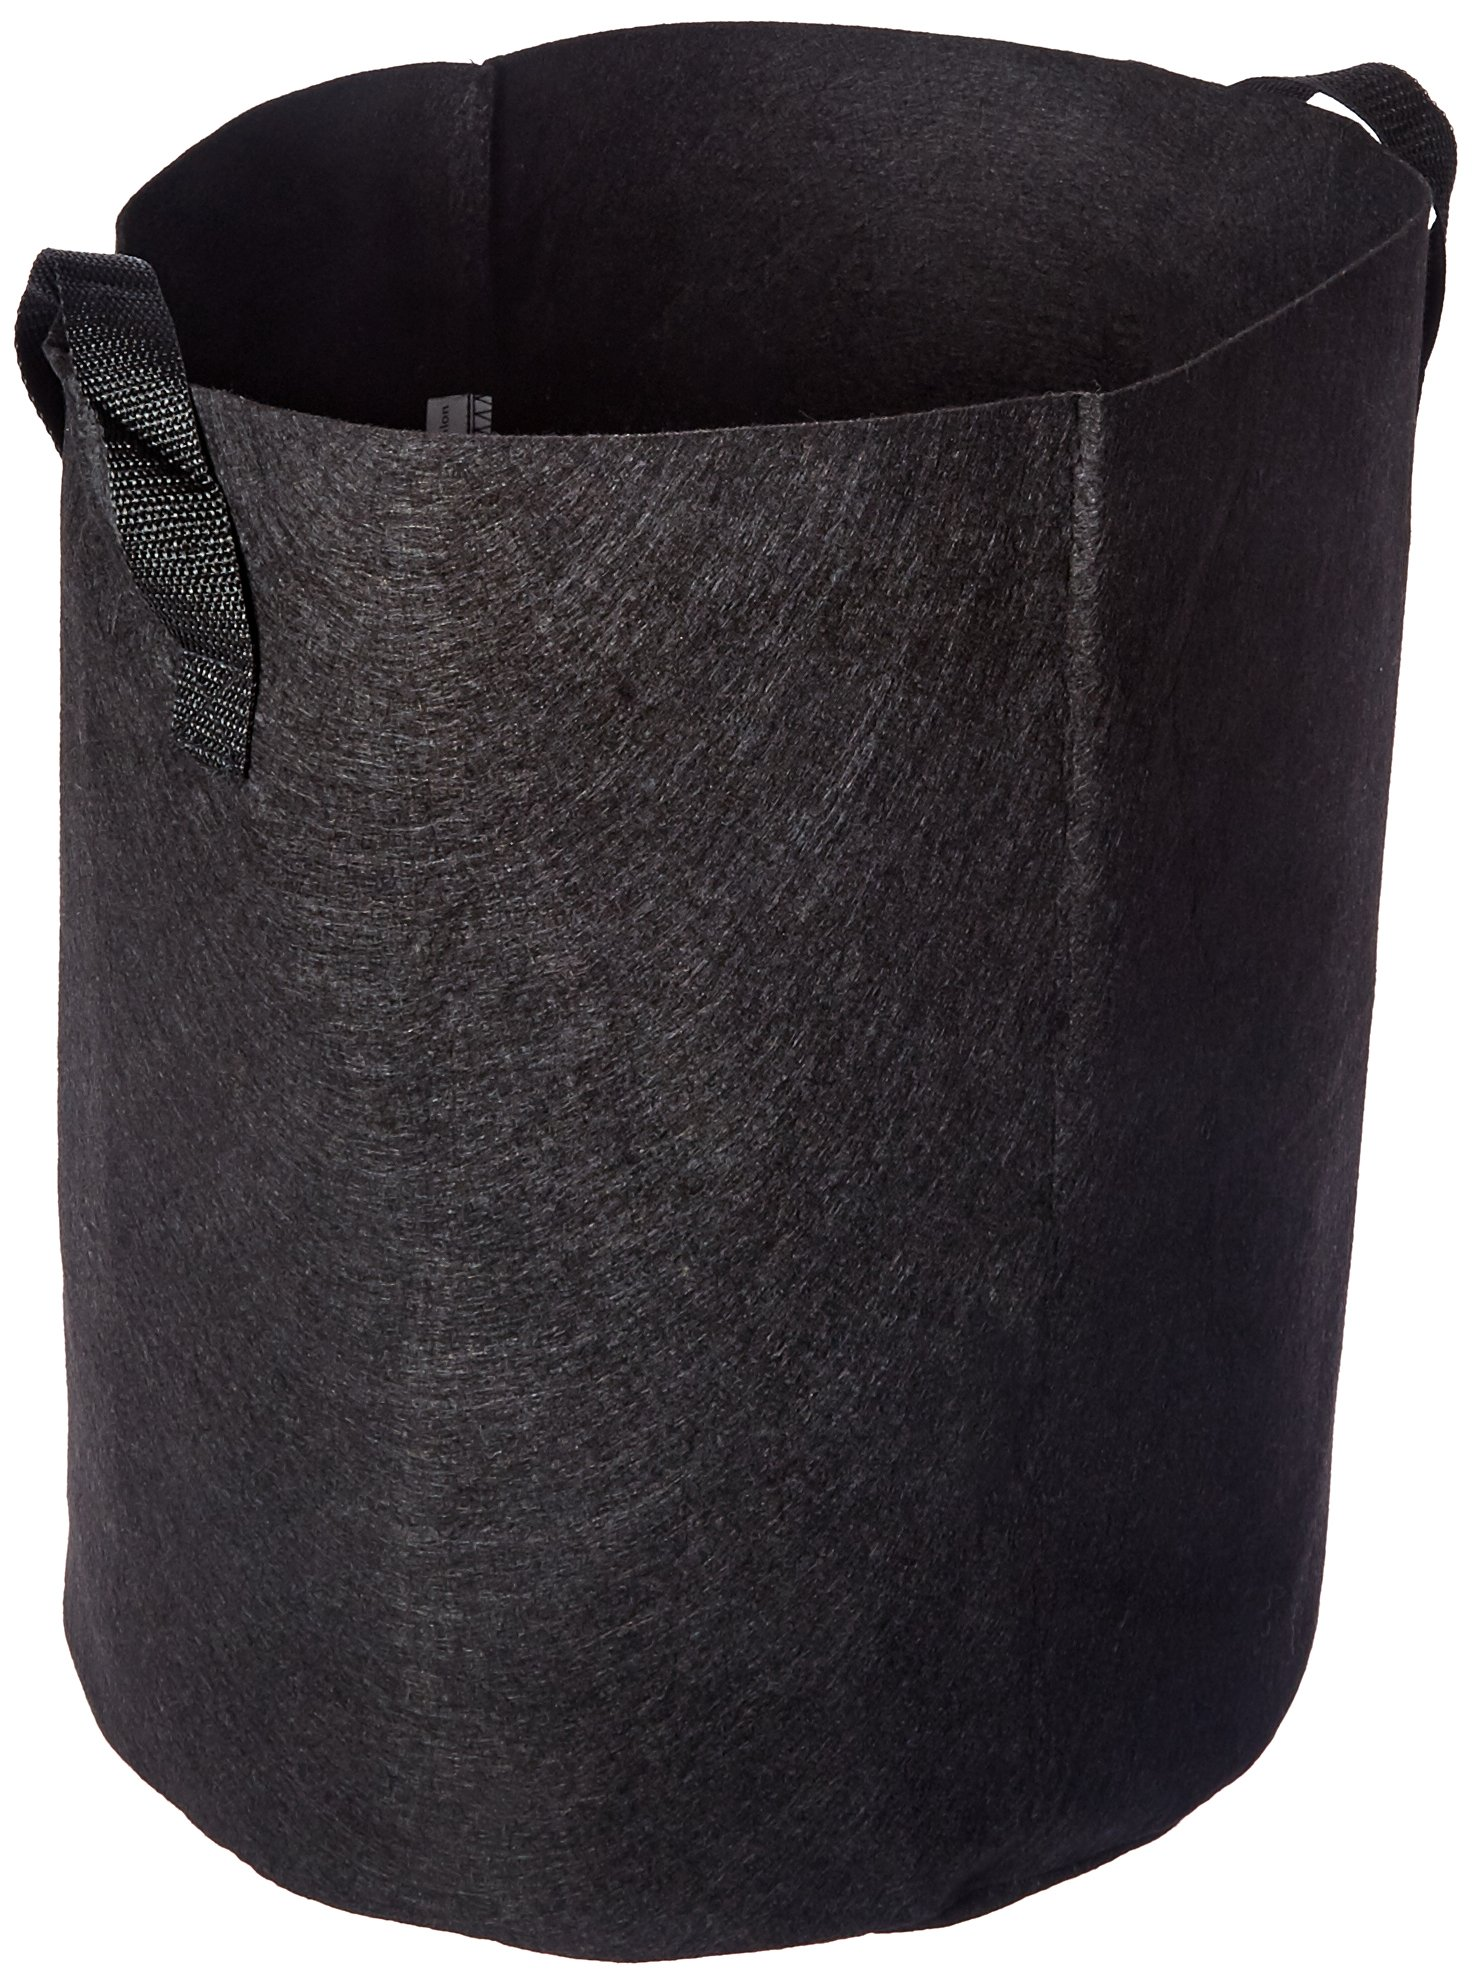 Viagrow Breathable Fabric Root Aeration Pot with Handles (5 Pack), 7 gallon, Black